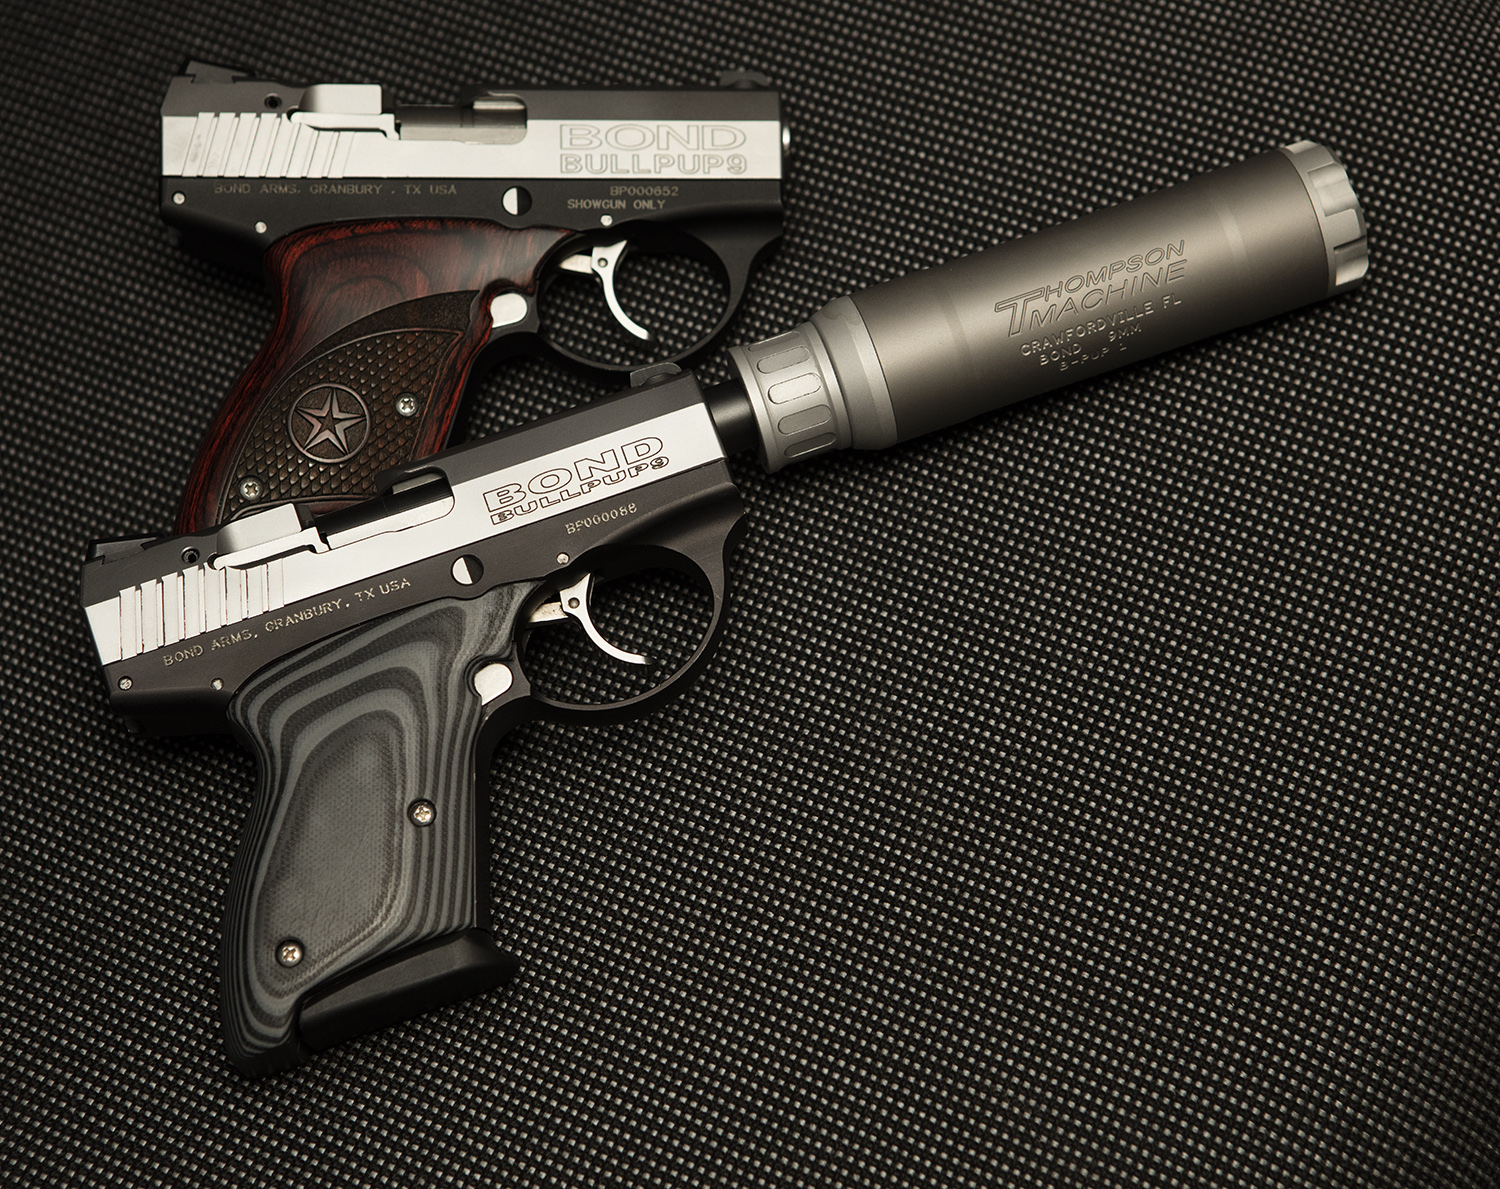 Bond Arms Bullpup Gets Suppressed